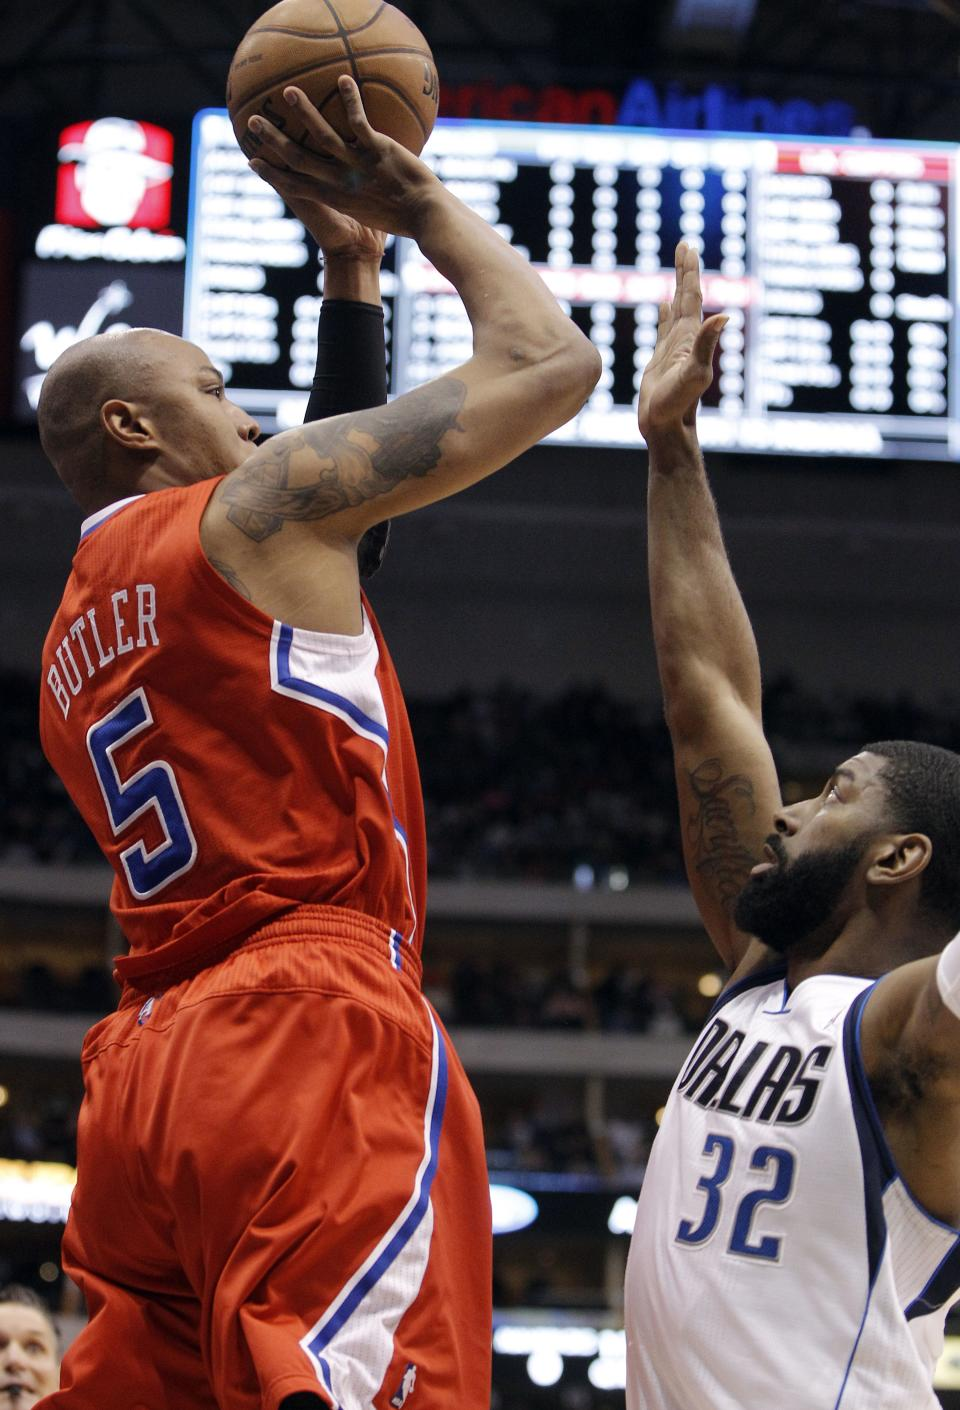 Los Angeles Clippers forward Caron Butler (5) shoots over Dallas Mavericks guard O.J. Mayo (32) during the first half of an NBA basketball game, Tuesday, March 26, 2013, in Dallas. (AP Photo/Brandon Wade)